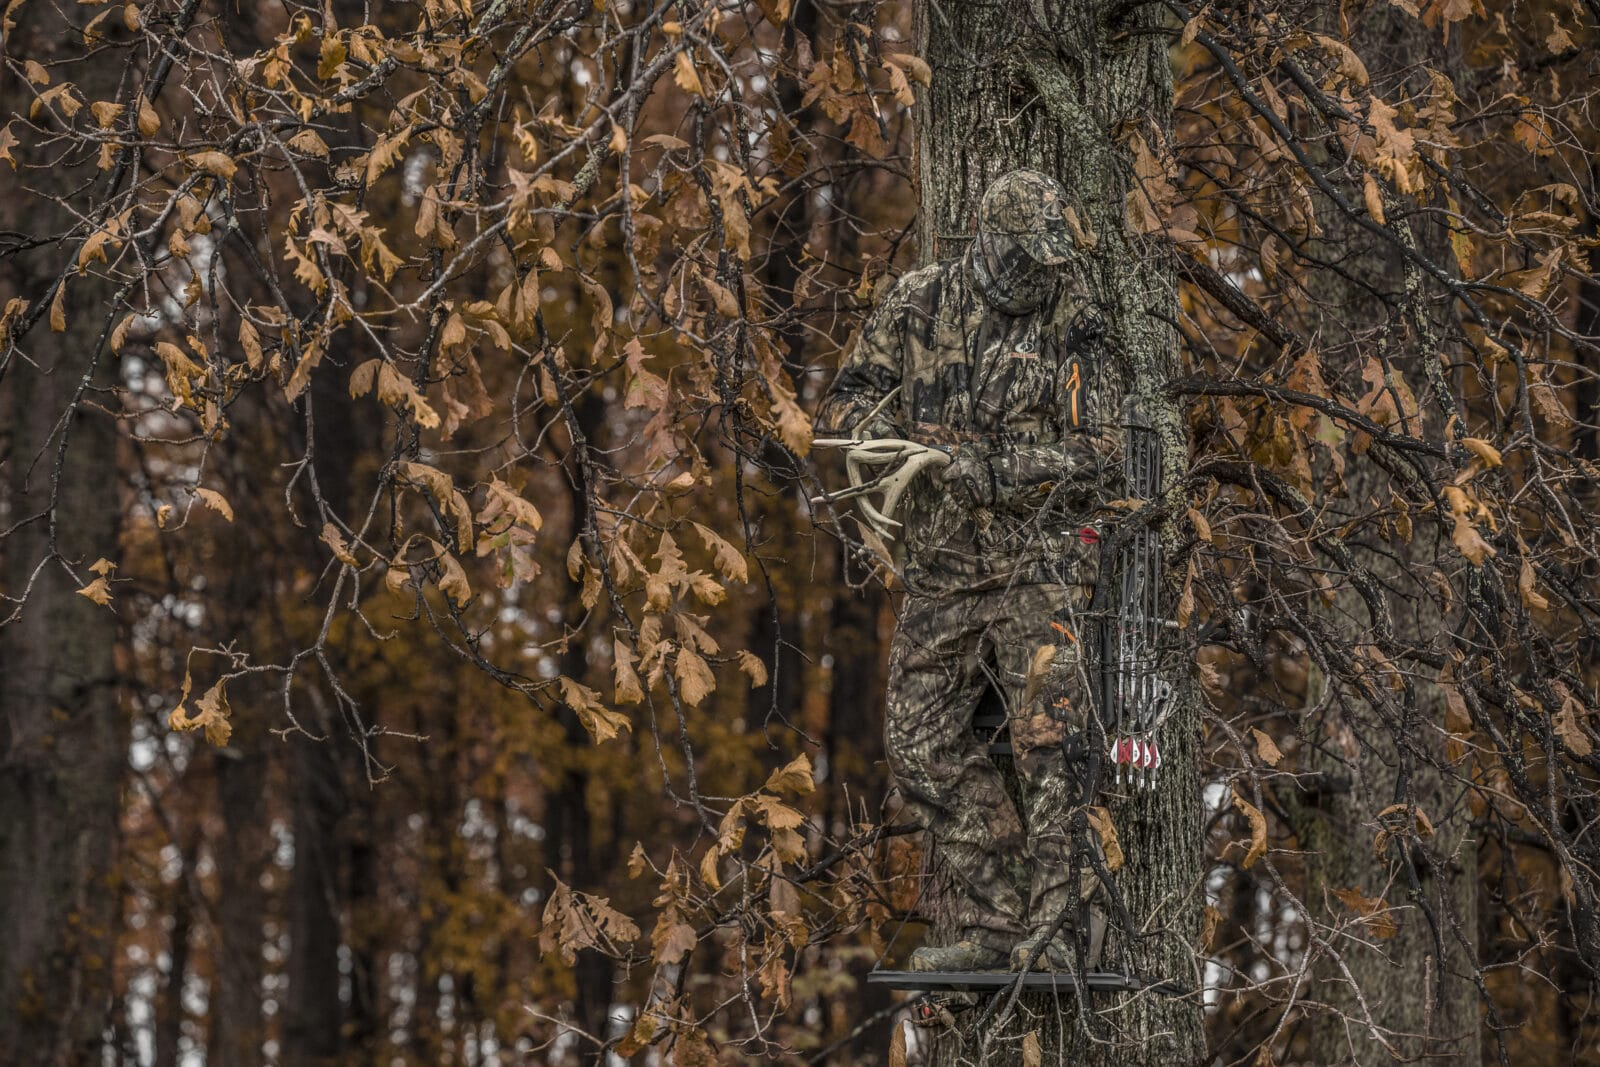 A hunter in a treestand